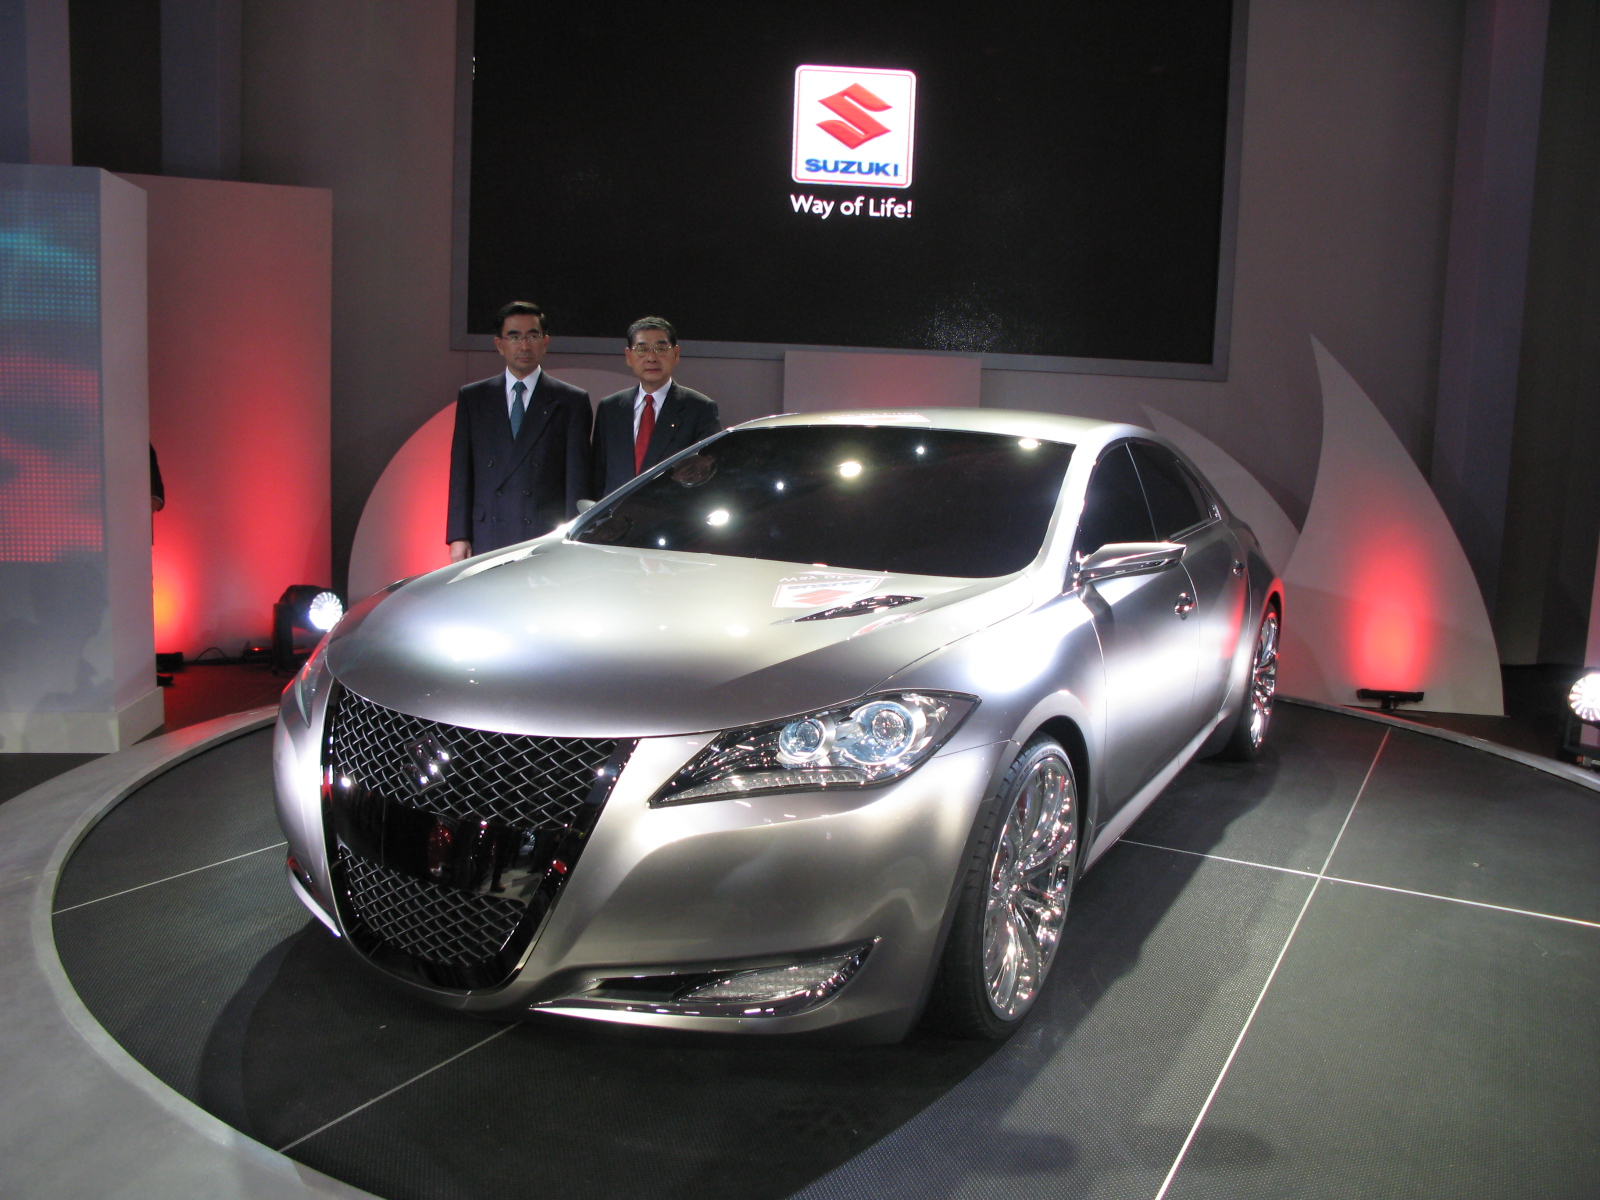 2008 suzuki kizashi 3 review top speed. Black Bedroom Furniture Sets. Home Design Ideas